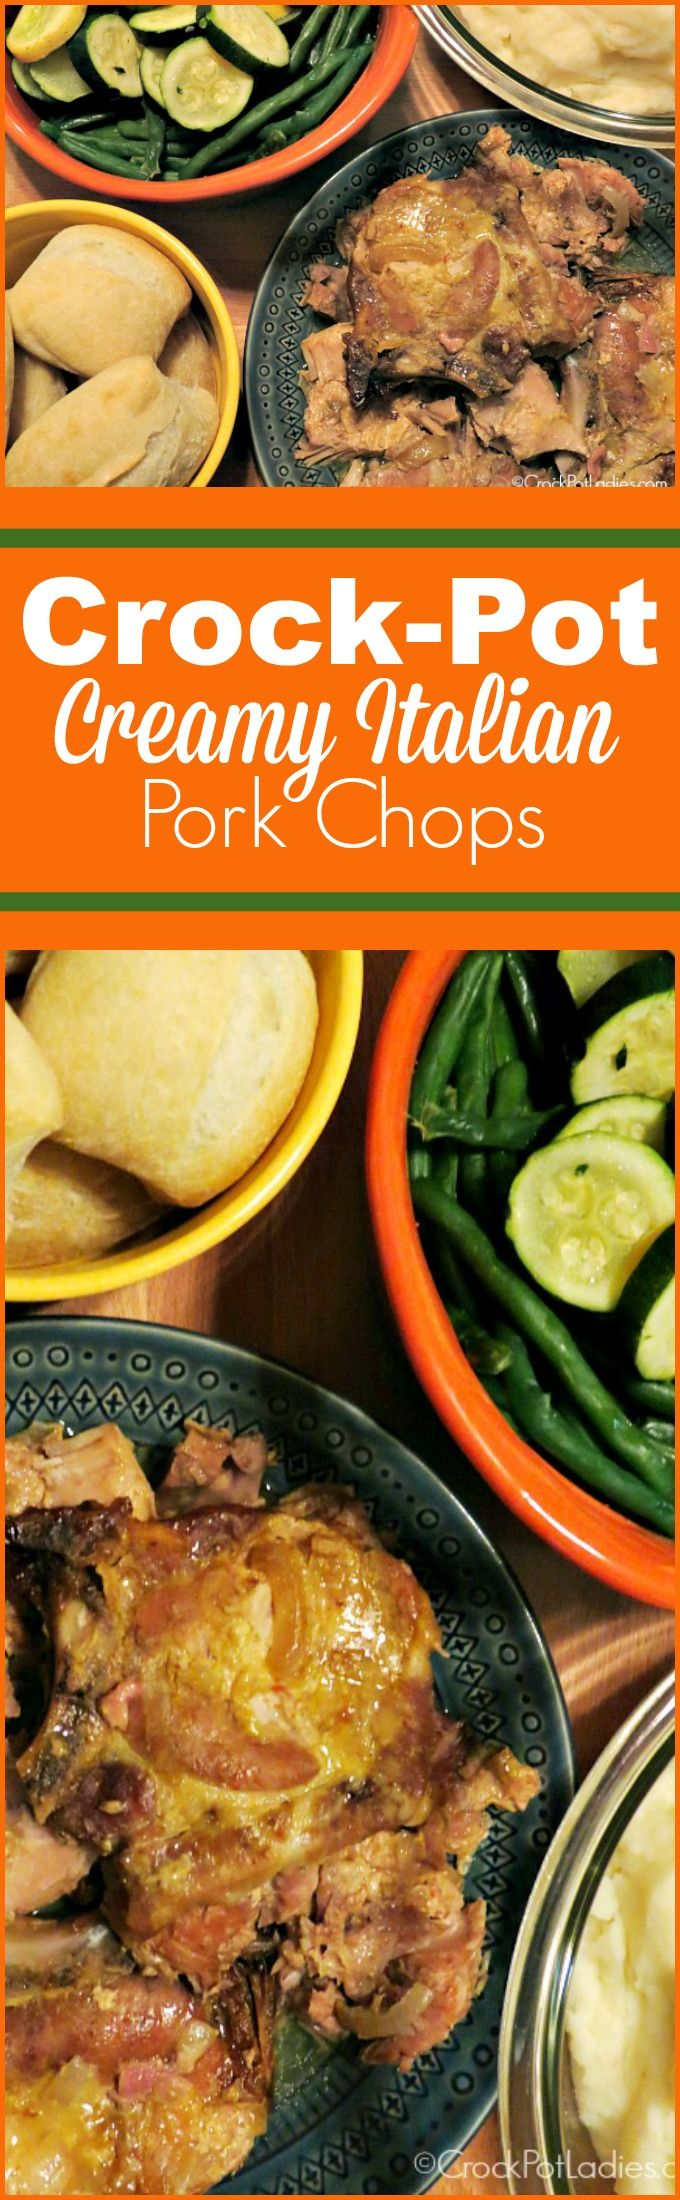 Crock-Pot Creamy Italian Pork Chops - With just 5 ingredients this quick and easy recipe for Slow Cooker Creamy Italian Pork Chops is simple to put together and the pork chops come out moist and tender and full of flavor! {via CrockPotLadies.com} #crockpot #slowcooker #recipes #glutenfree #healthy #weightwatchers